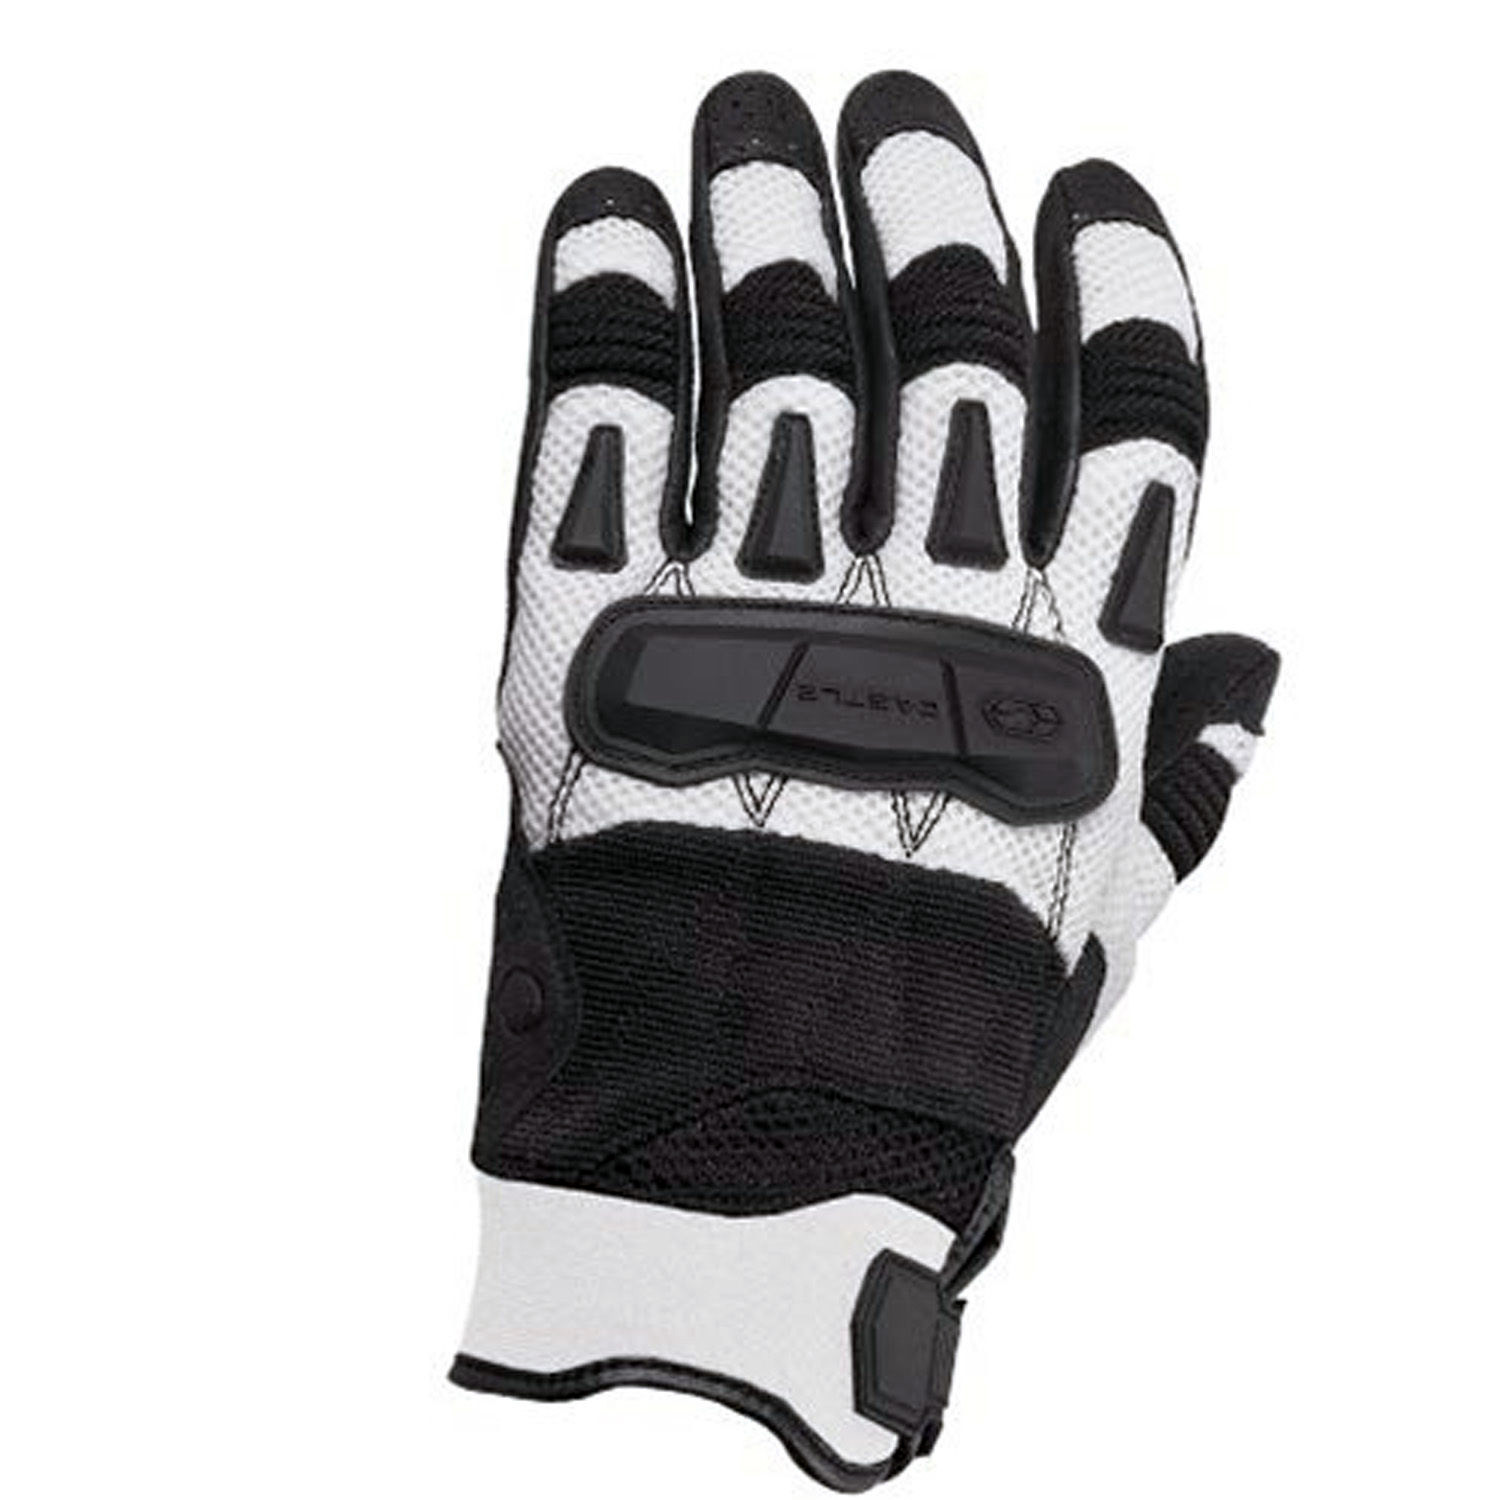 Castle New White Blast Motorcycle Riding Gloves, Medium, 20-4294